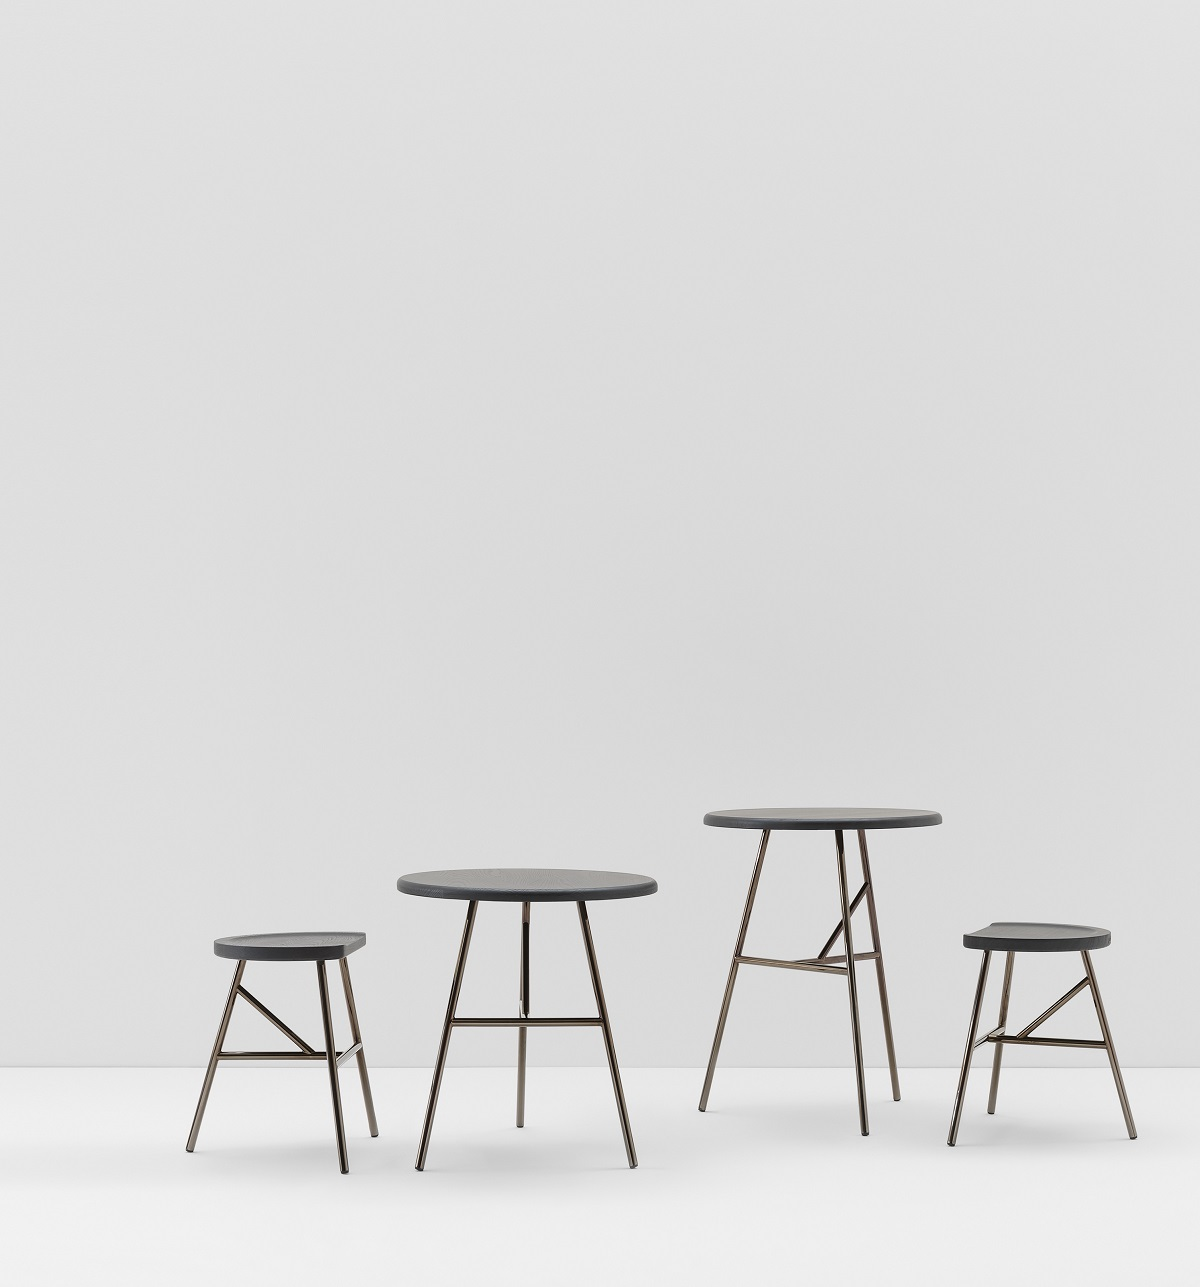 Puccio Low Stool - <p>Those routines from a recent past, rural and by now evaporated away, suddenly once again hold sway over the spaces of new times, in new ways of being together. This is how Puccio springs to life, from the disillusioned milking stool that reinvents its new modern self. Its form remains slim and usable just as it used to be, but Puccio gleefully transforms itself and makes itself useful in various functions: as seating, as tables, as a bench and as stools of varying heights, defining and transforming itself with post-modern ability. From the milking stool remains the warmth of wood, as does the elasticity of ashwood to which can be added, through the steel version, the technological sturdiness of the metal. The softness of the line remains, its fun, and the colour which never suffices. A thing of beauty retains its beauty for ever.</p>  | Matter of Stuff